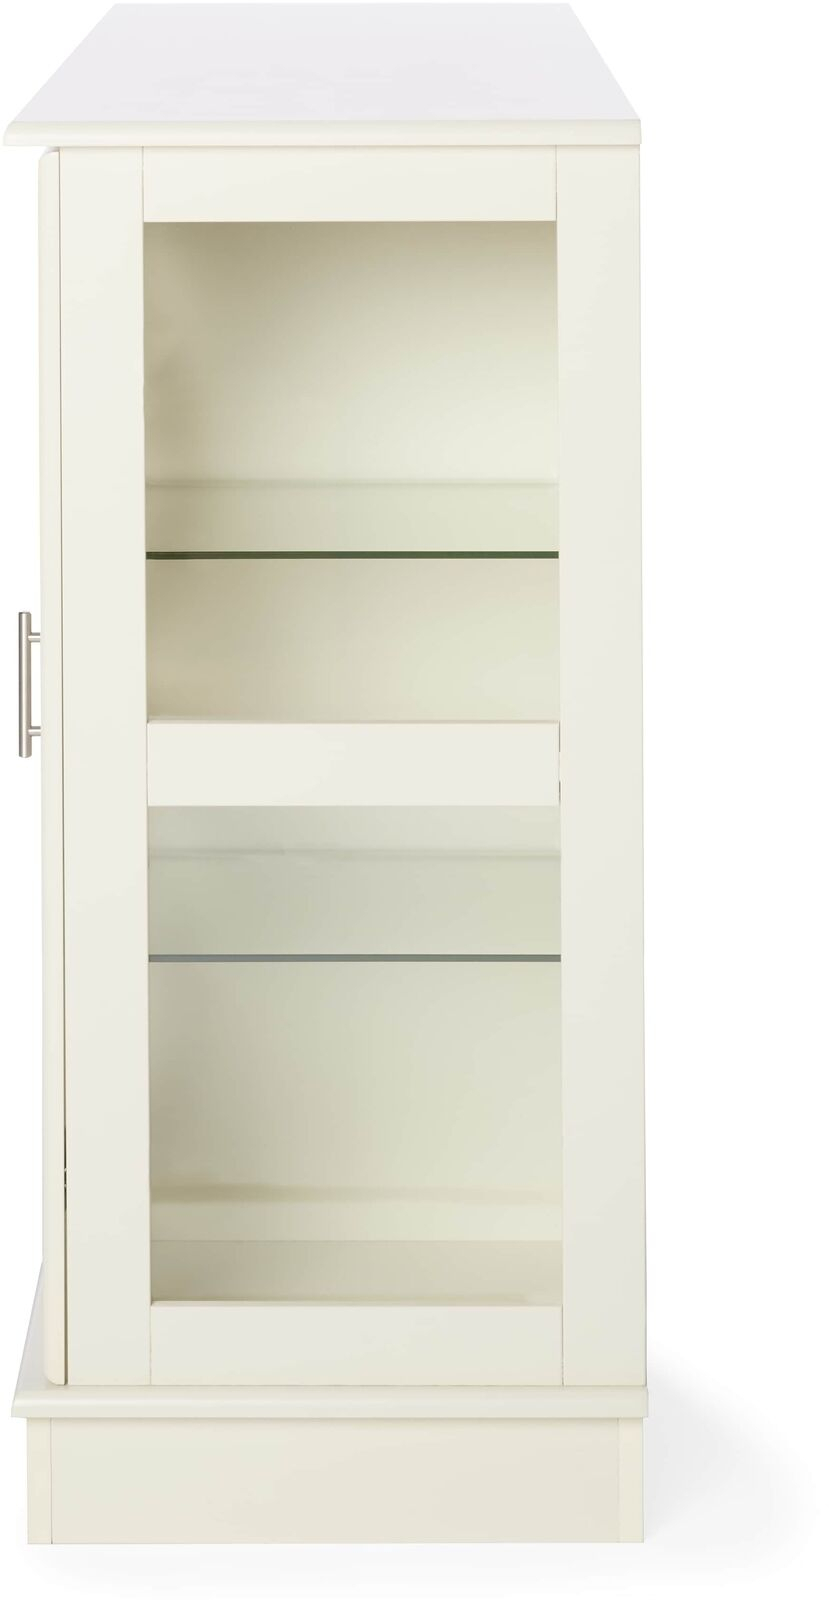 Simple Living Antique White Kendall Buffet Display Cabinet Drawers Within Simple Living Antique White Kendall Buffets (View 21 of 30)